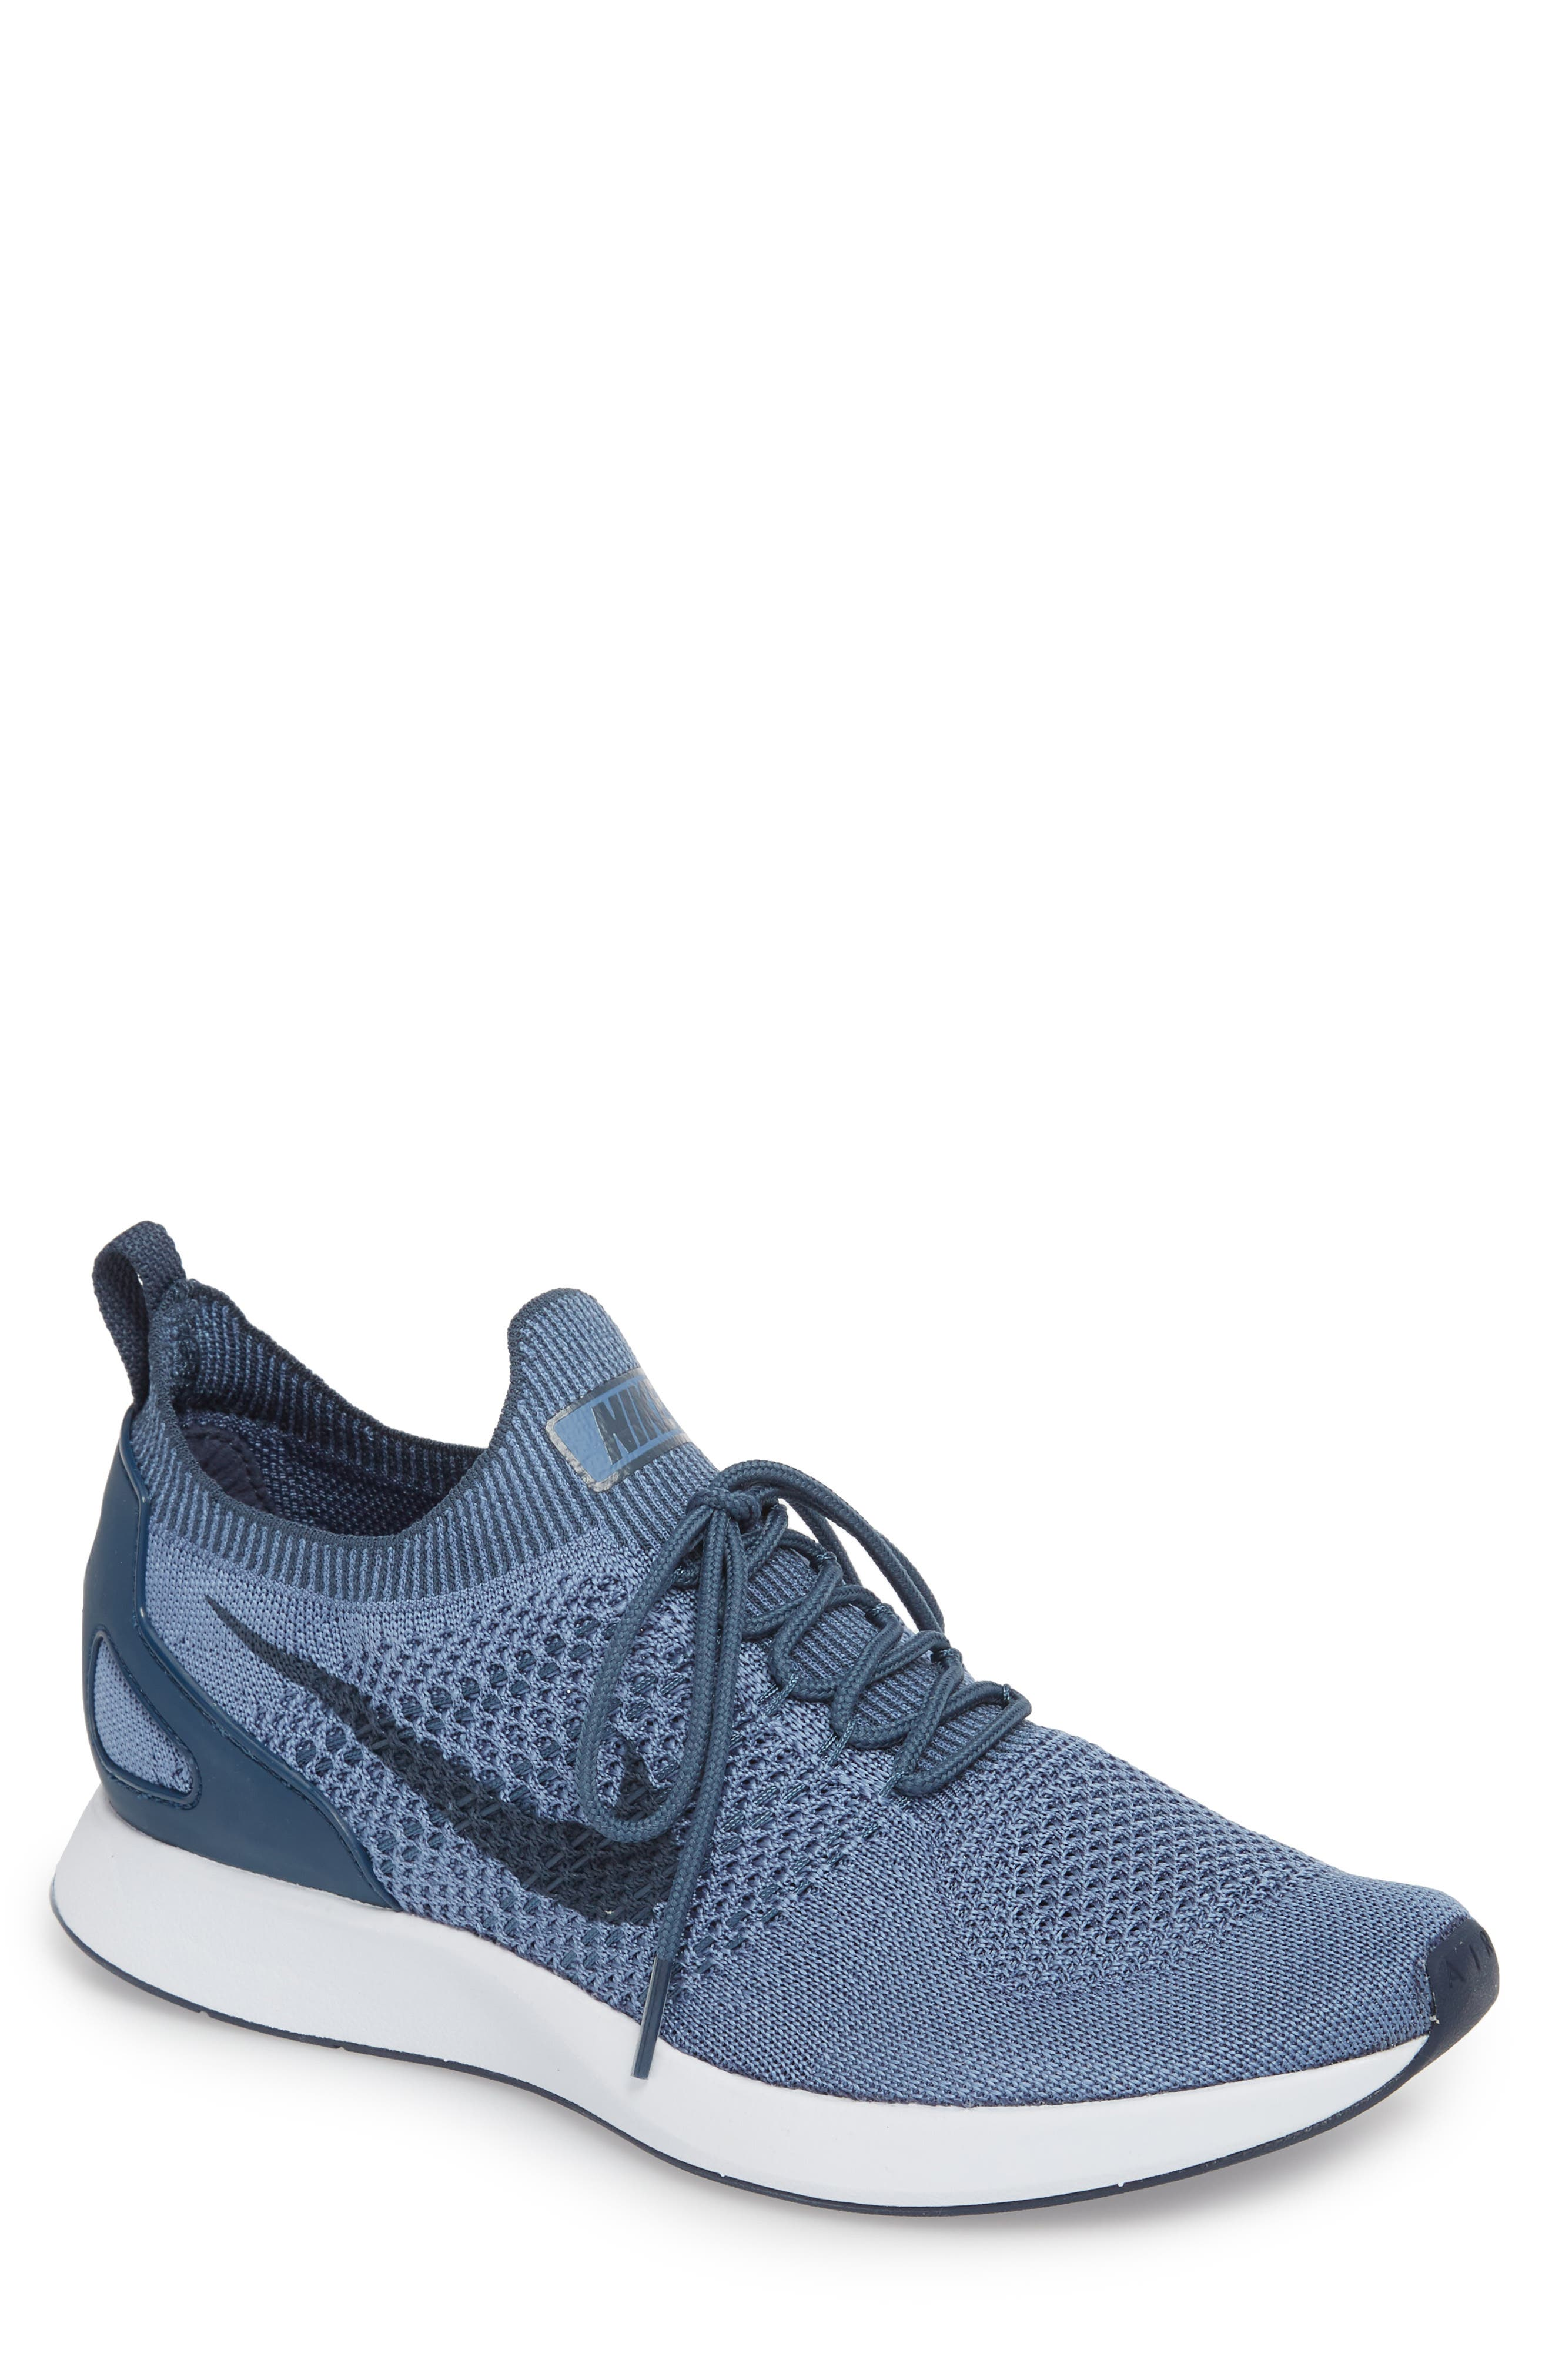 Air Zoom Mariah Flyknit Racer Sneaker,                         Main,                         color, OCEAN FOG/ BLUE/ WHITE